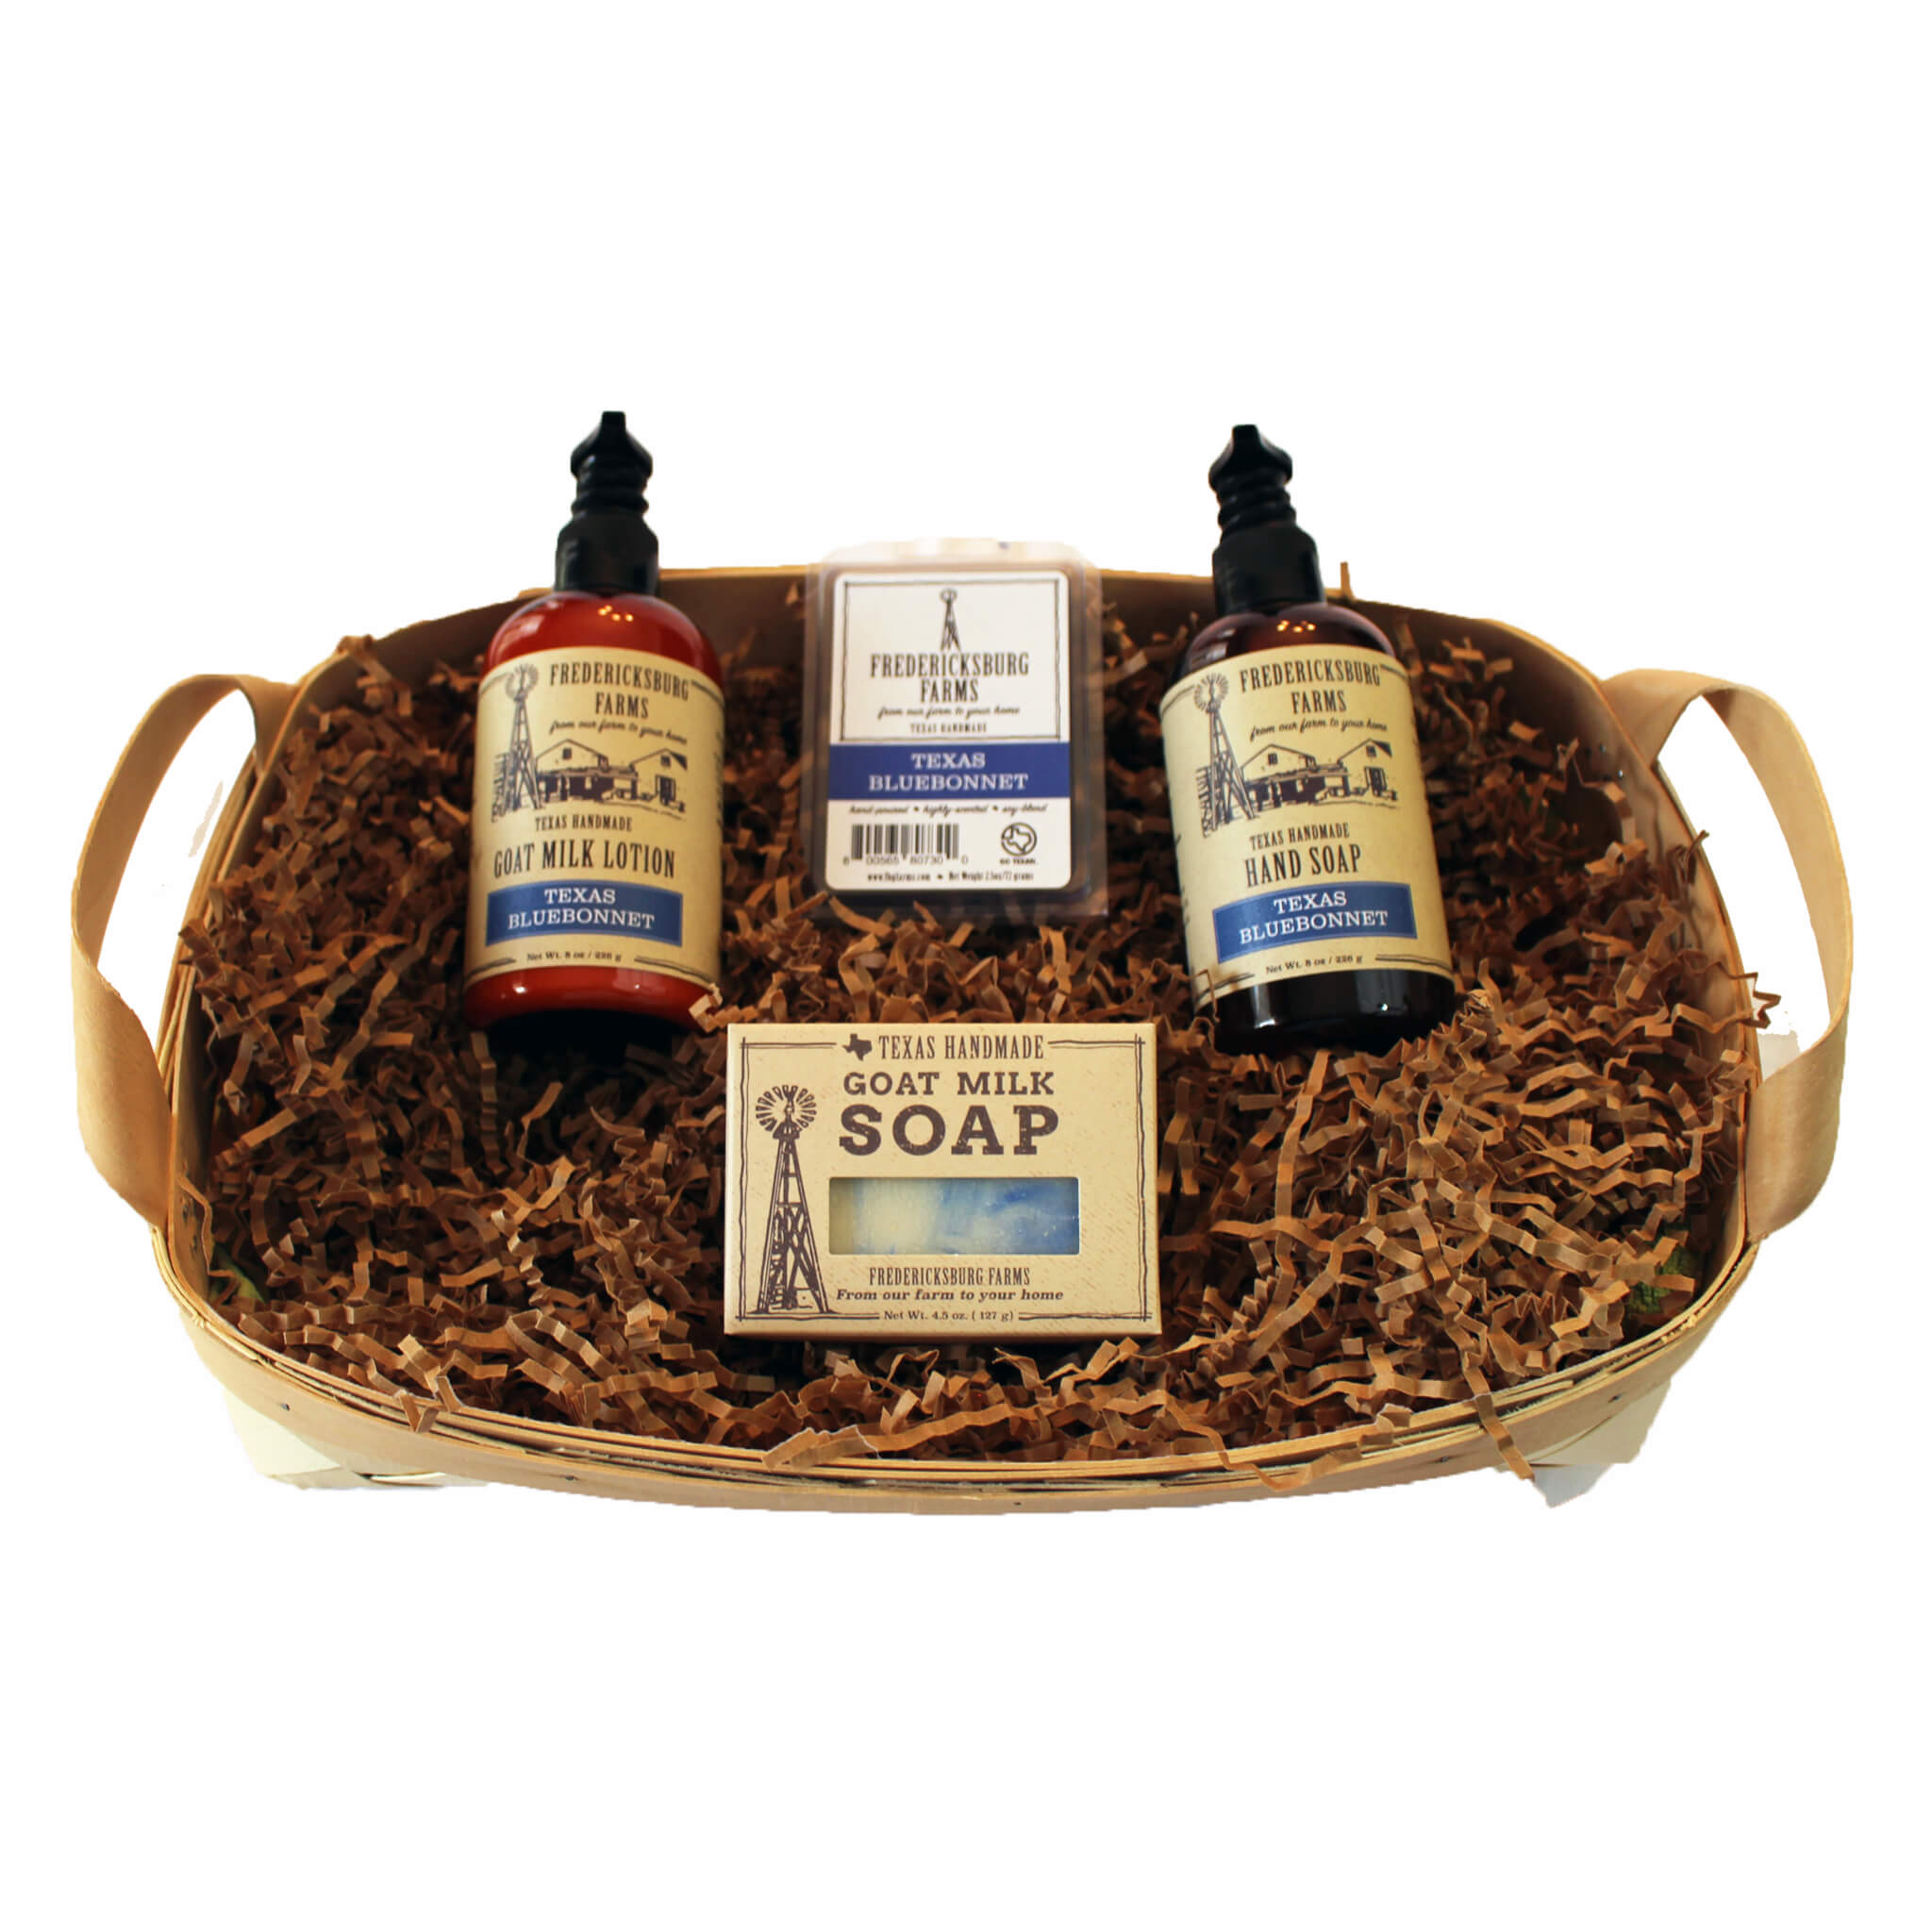 Texas Bluebonnet Gift Basket - Fredericksburg Farms